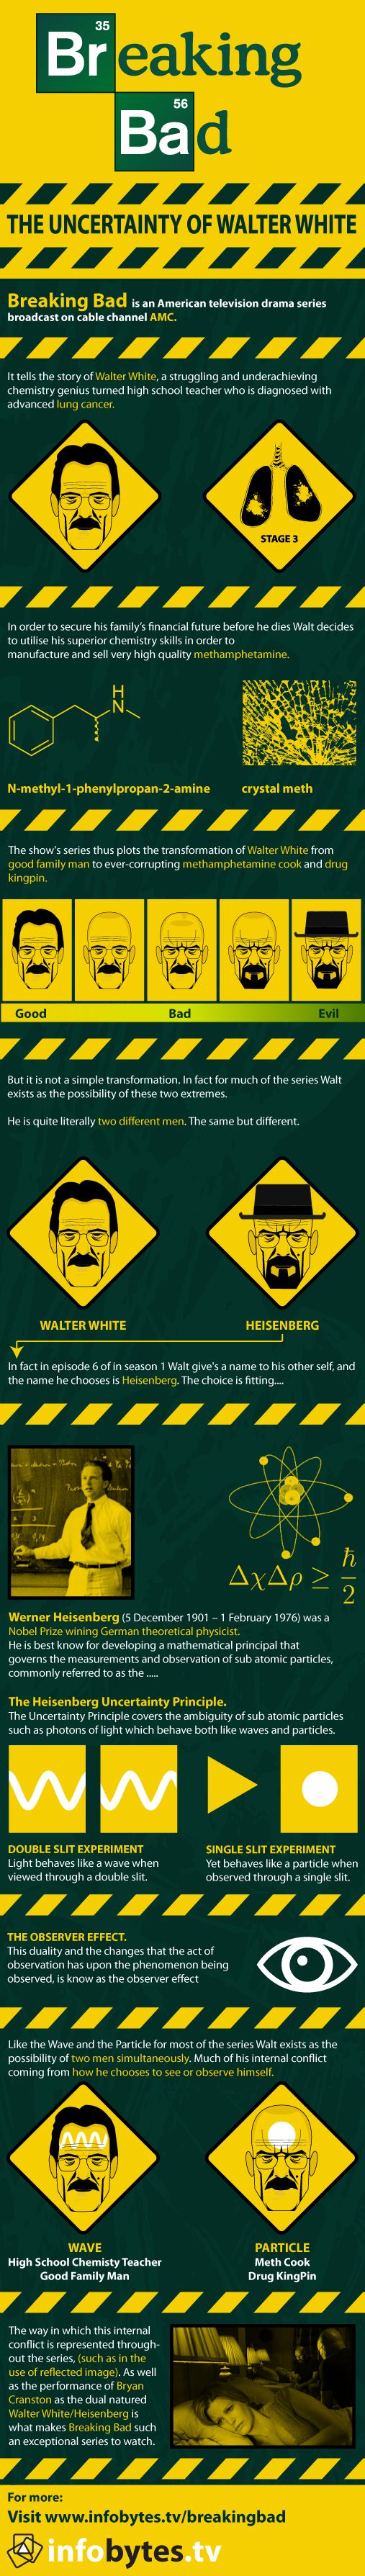 Walter white green apron - This One S For Laurin Rutt Fans An Analysis Of The Transformation Of Walter White Into Heisenberg On The Tv Series Breaking Bad